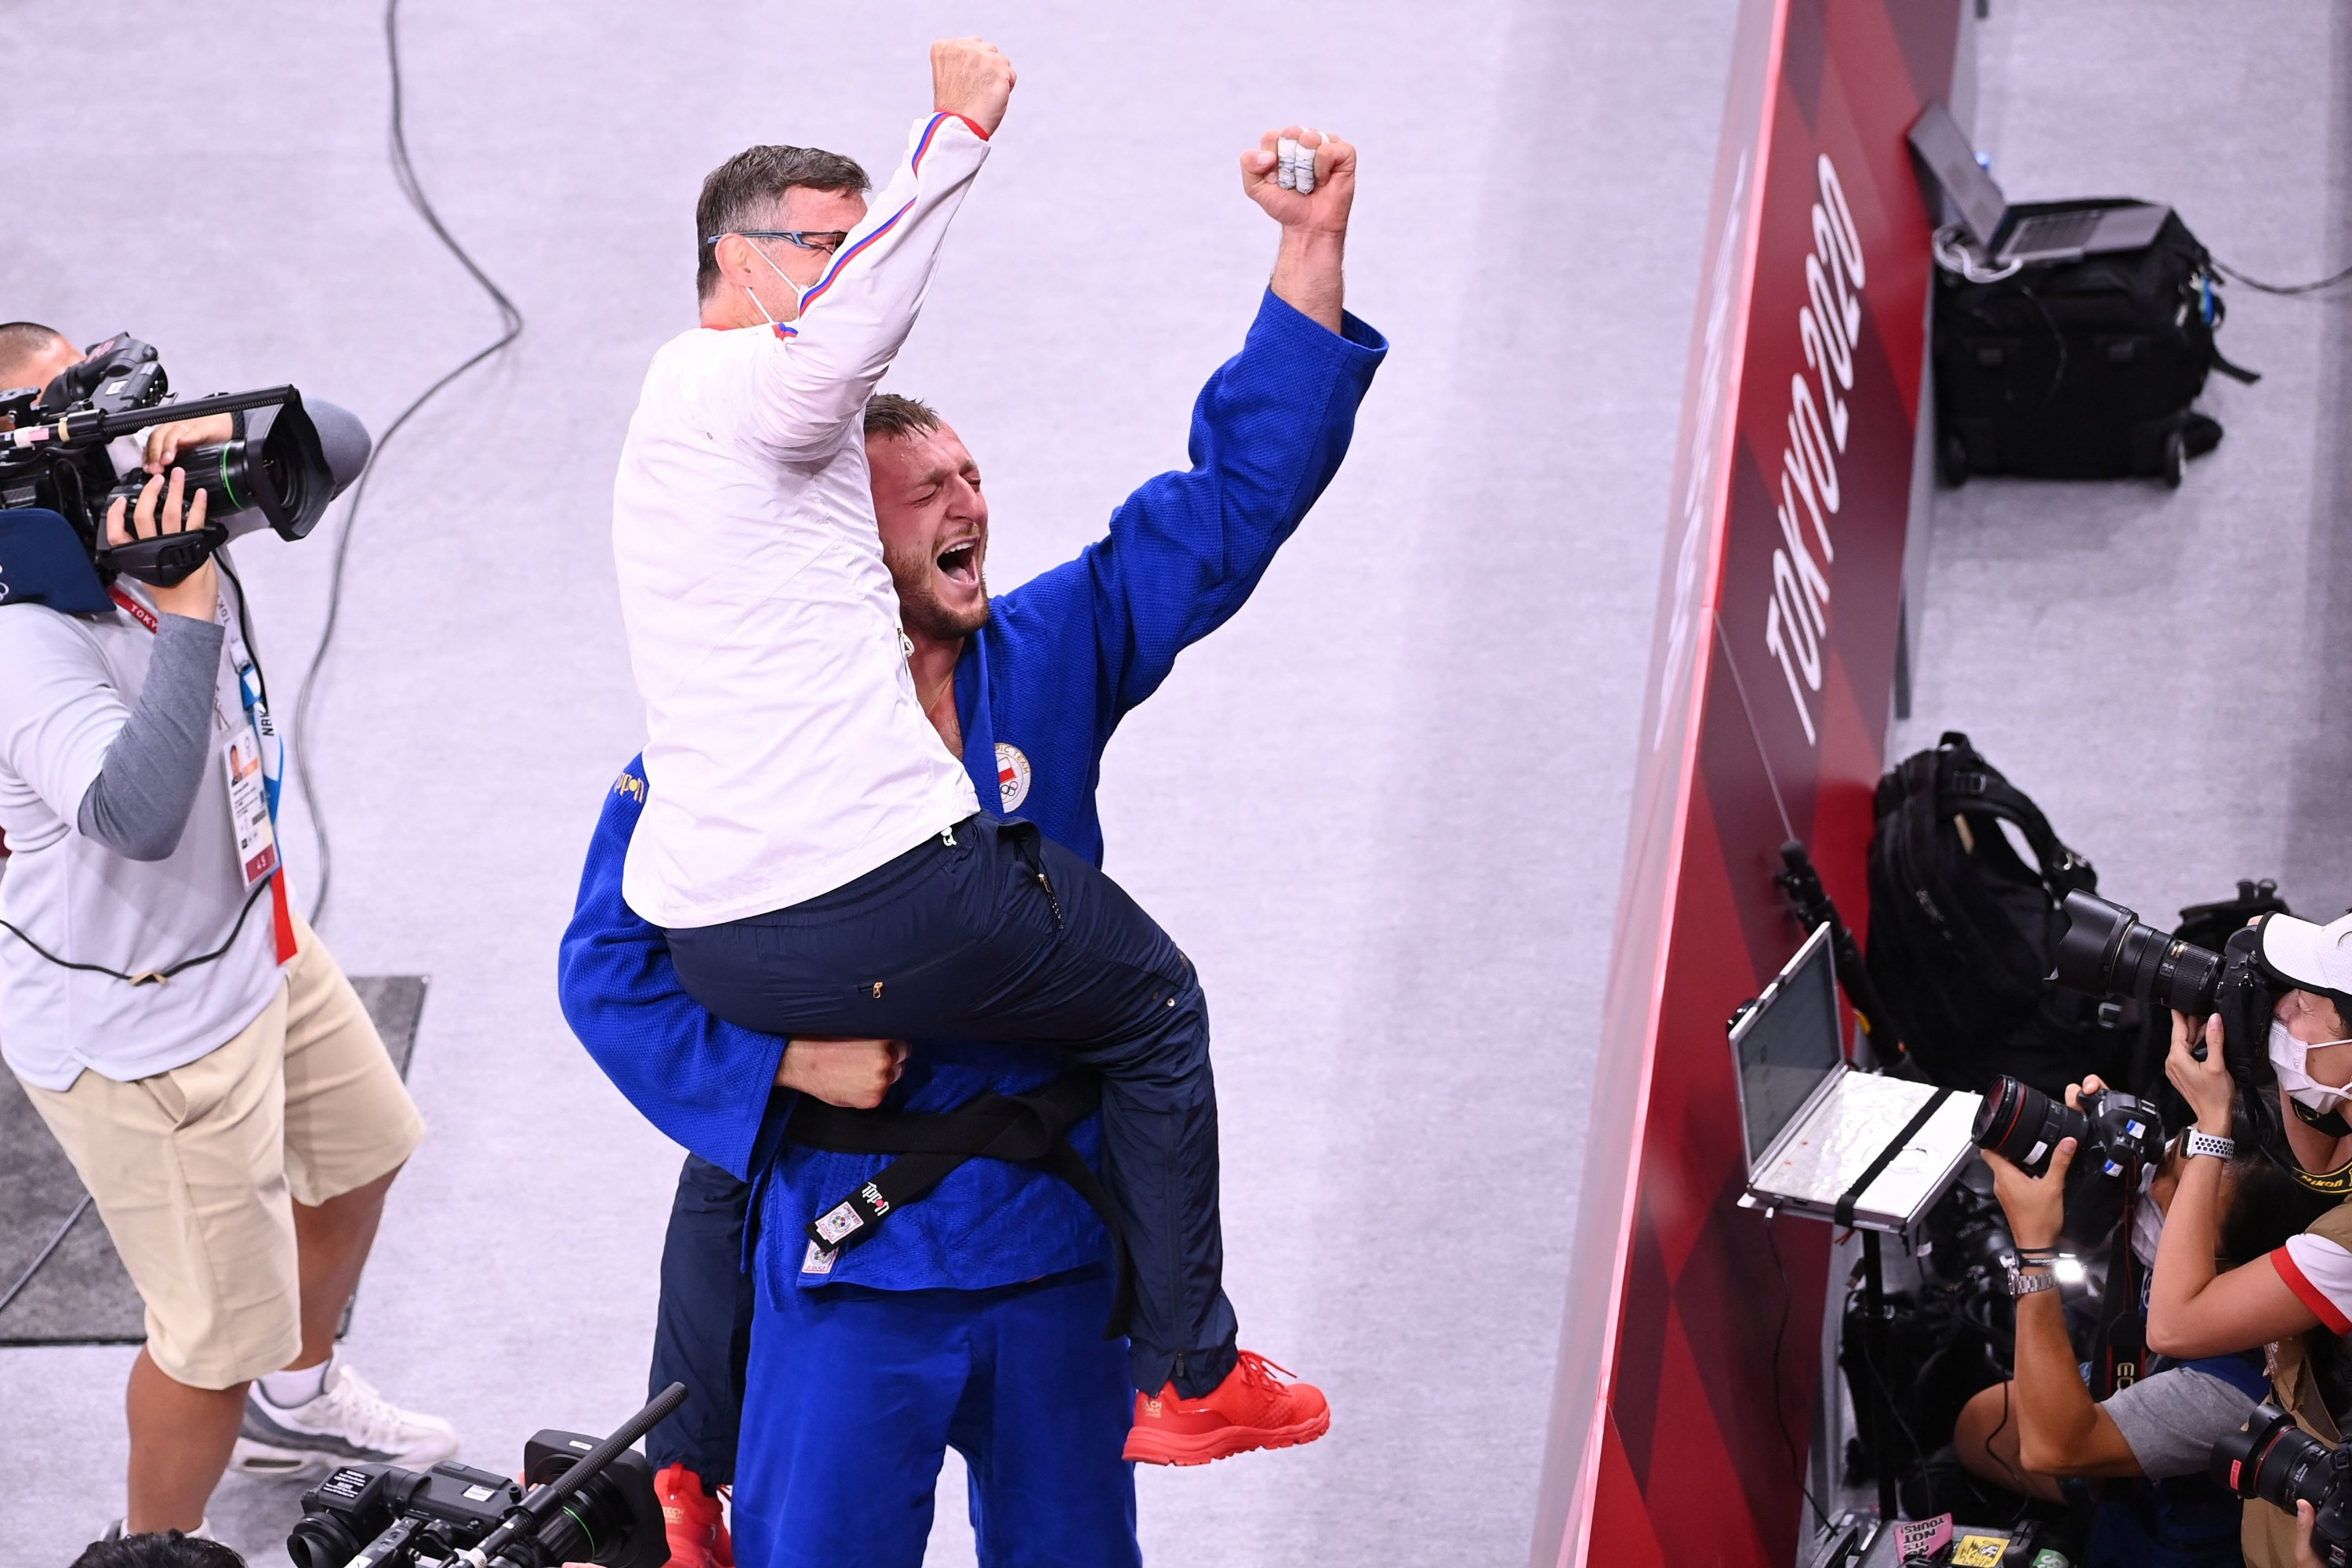 An Olympic athlete lifts up his coach after winning an event with both of them raising their fists in celebration